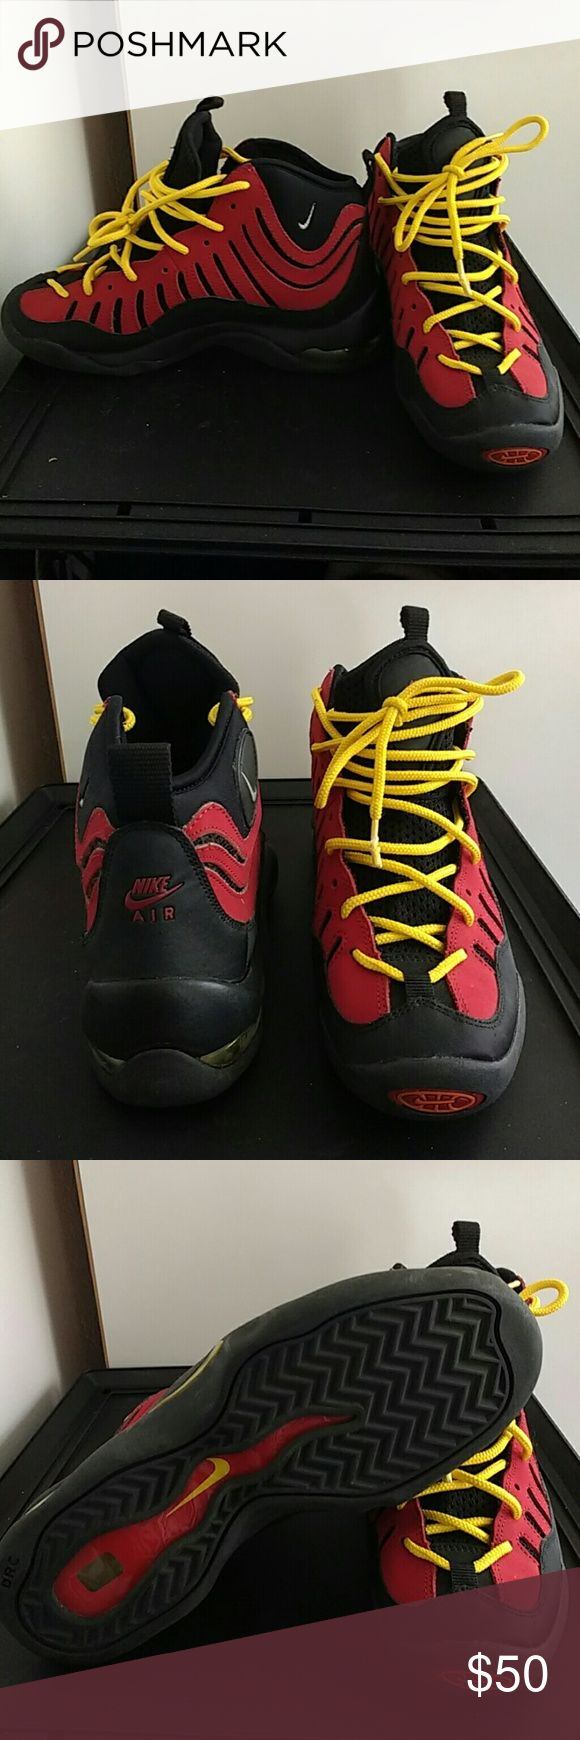 Nike Rodman Worms Nike sneakers. Dennis Rodmans. Black, red and yellow. Youth 5, women's 7/7.5. Nike Shoes